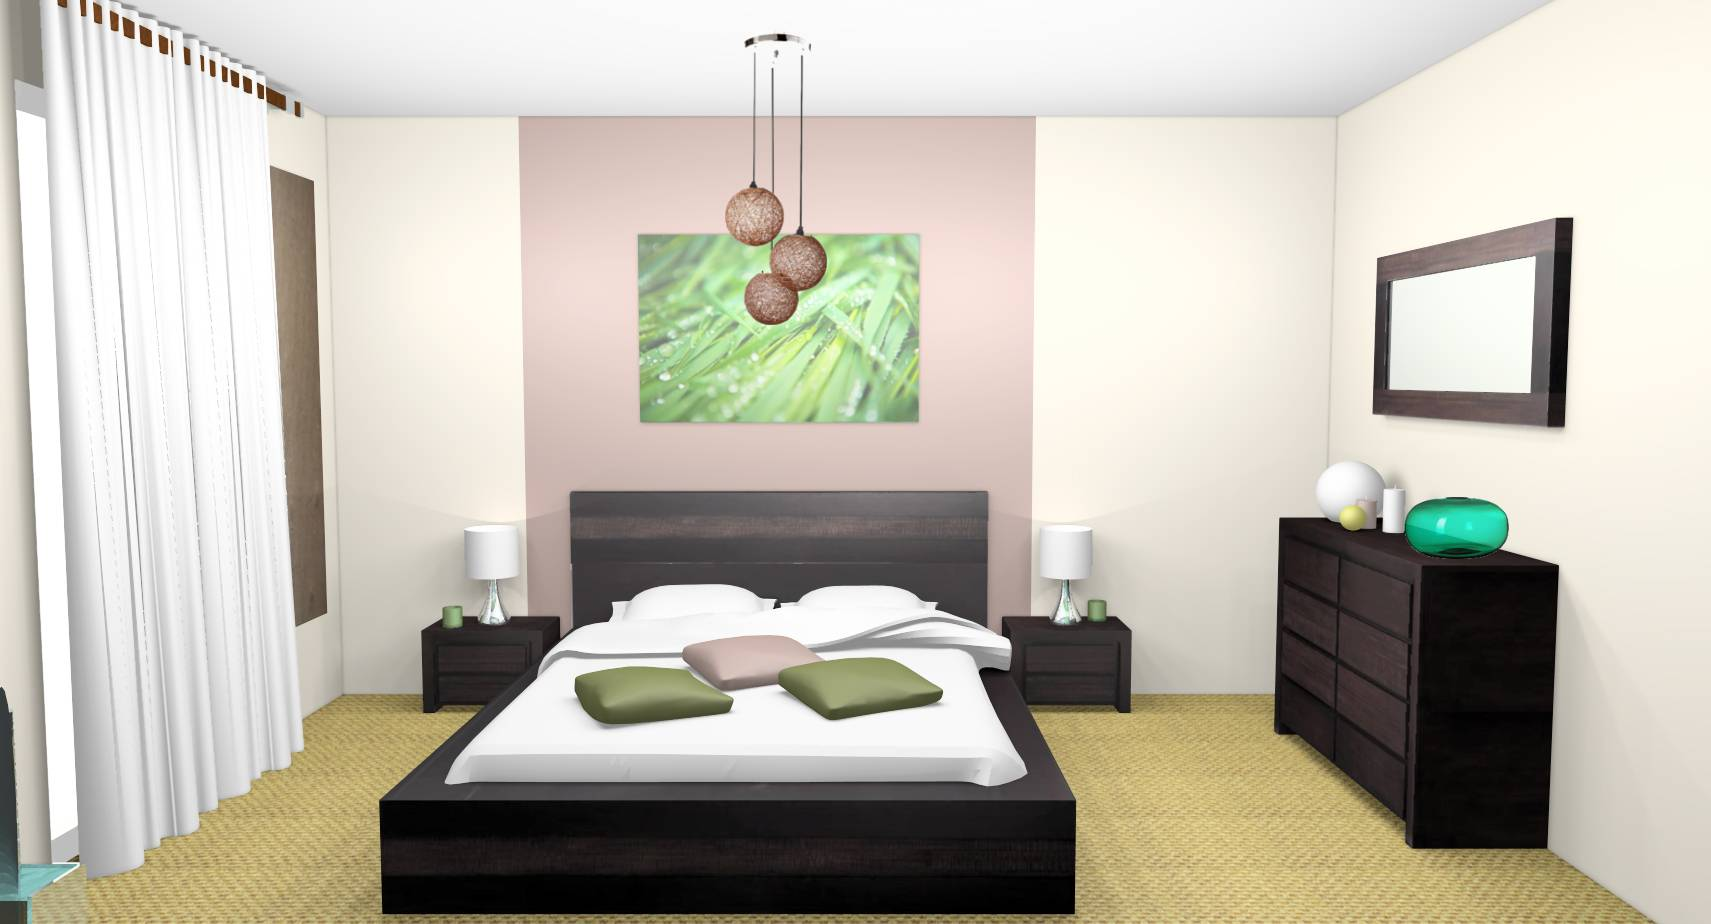 D coration chambre adulte zen - Decoration chambre adultes ...